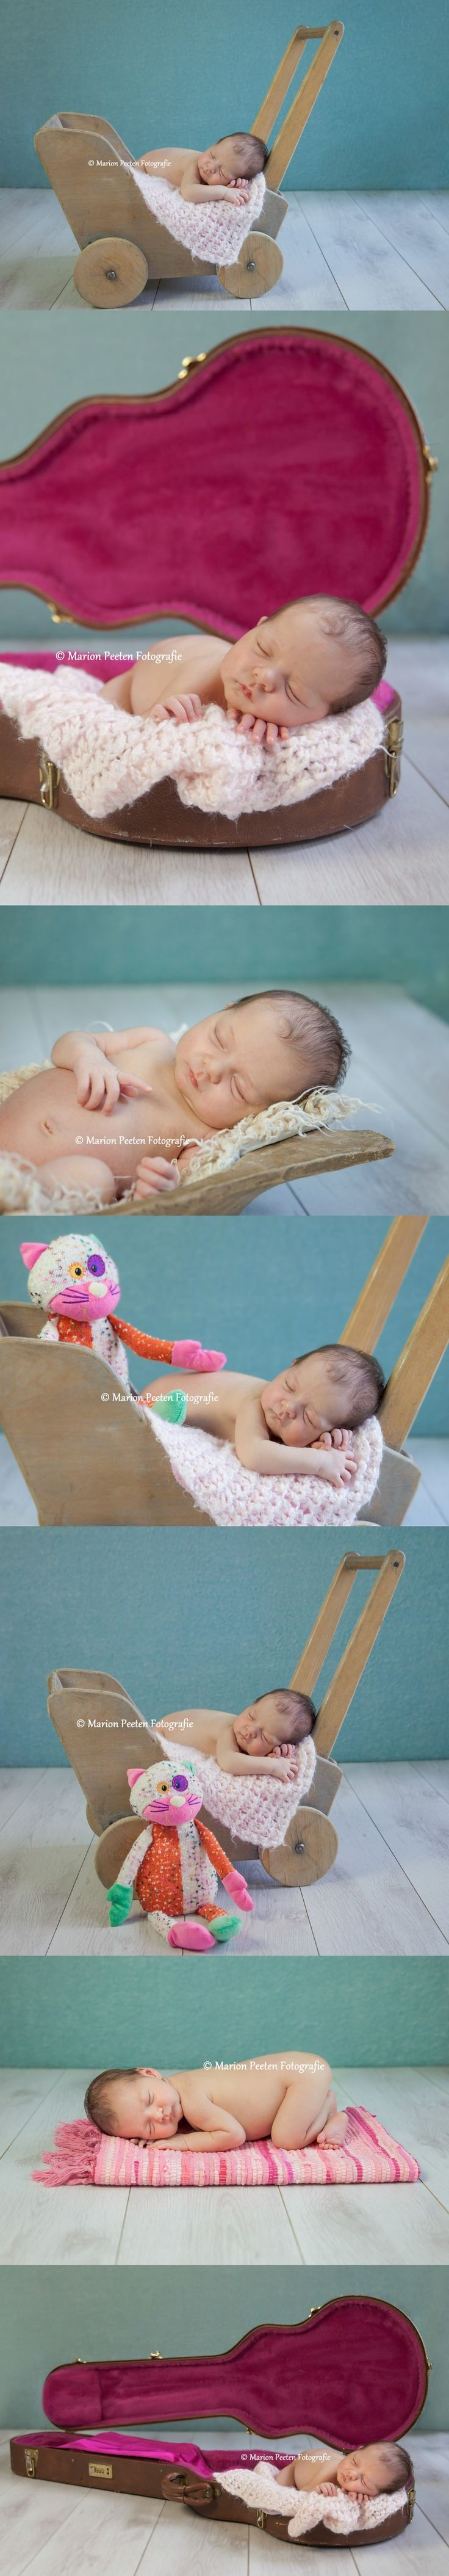 Newborn fotografie Limburg, studio fotografie.Newborn in gitaarkoffer. Newborn in guitar case .